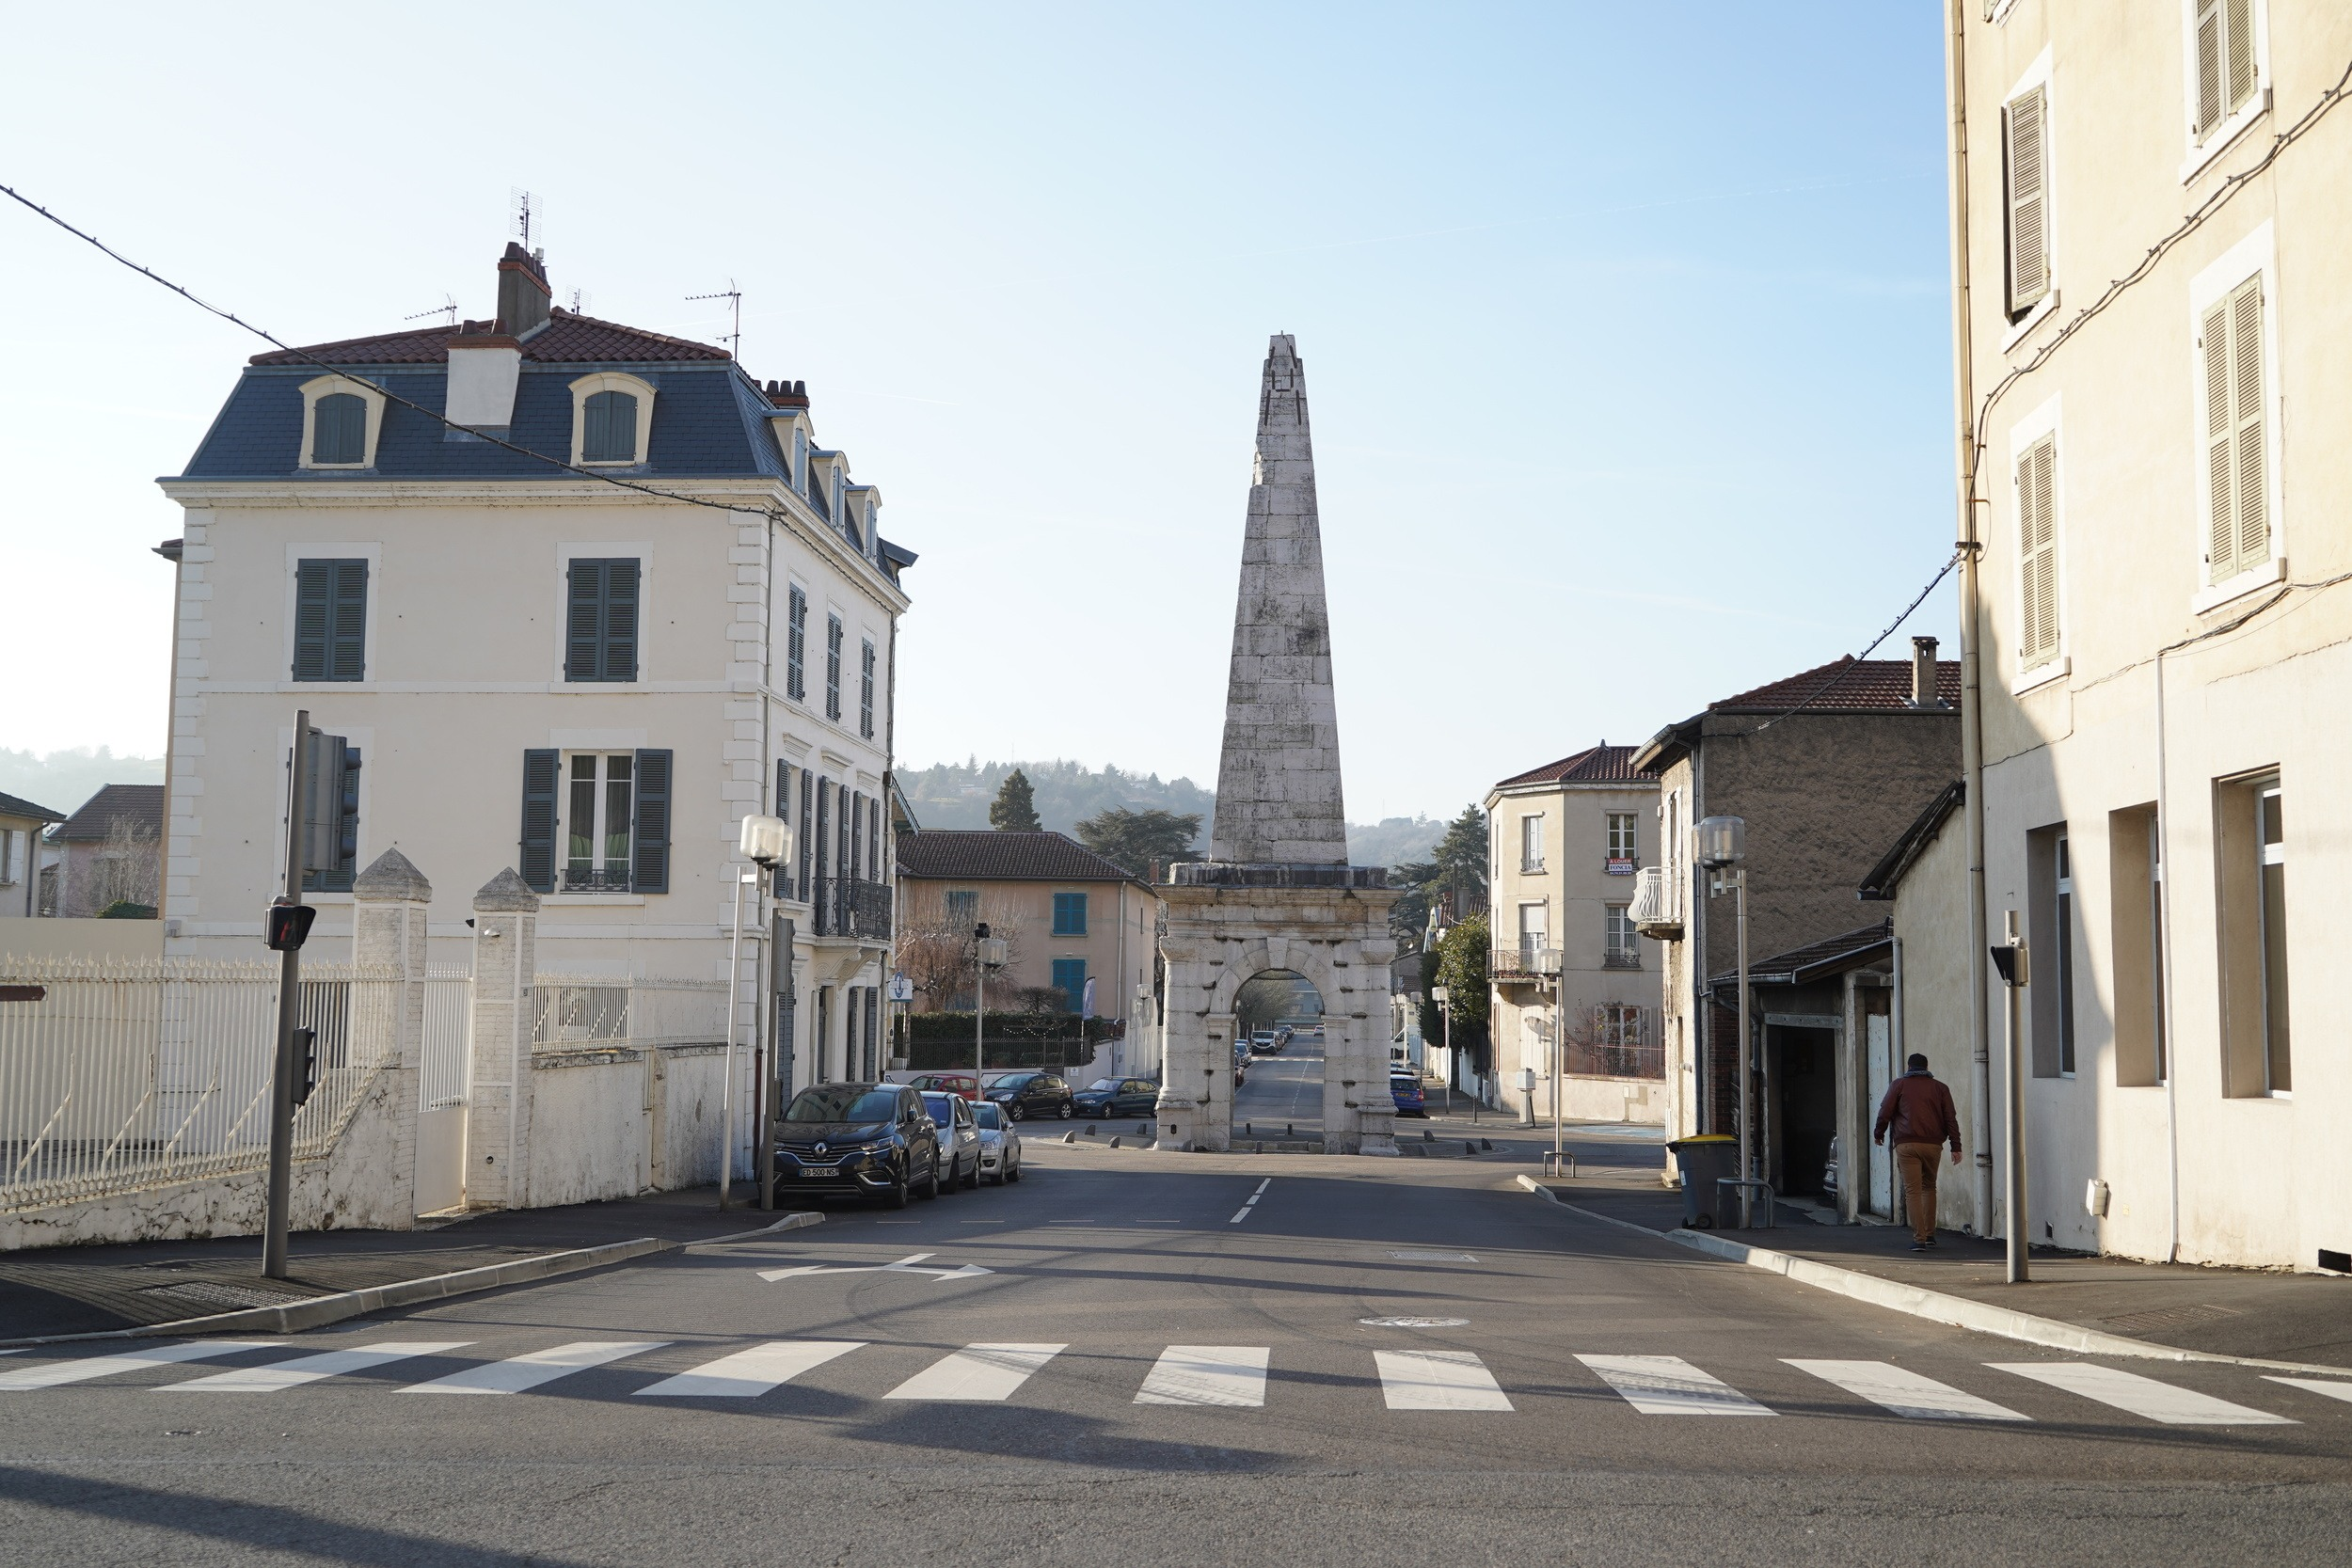 Vienne France Guide: Best things to do in Vienne, a Roman city day trip from in Auvergne-Rhône-Alpes. Here's where to stay, best attractions, and the best sites from antiquity in the city of Vienne, which was known as Vienna during Roman times!